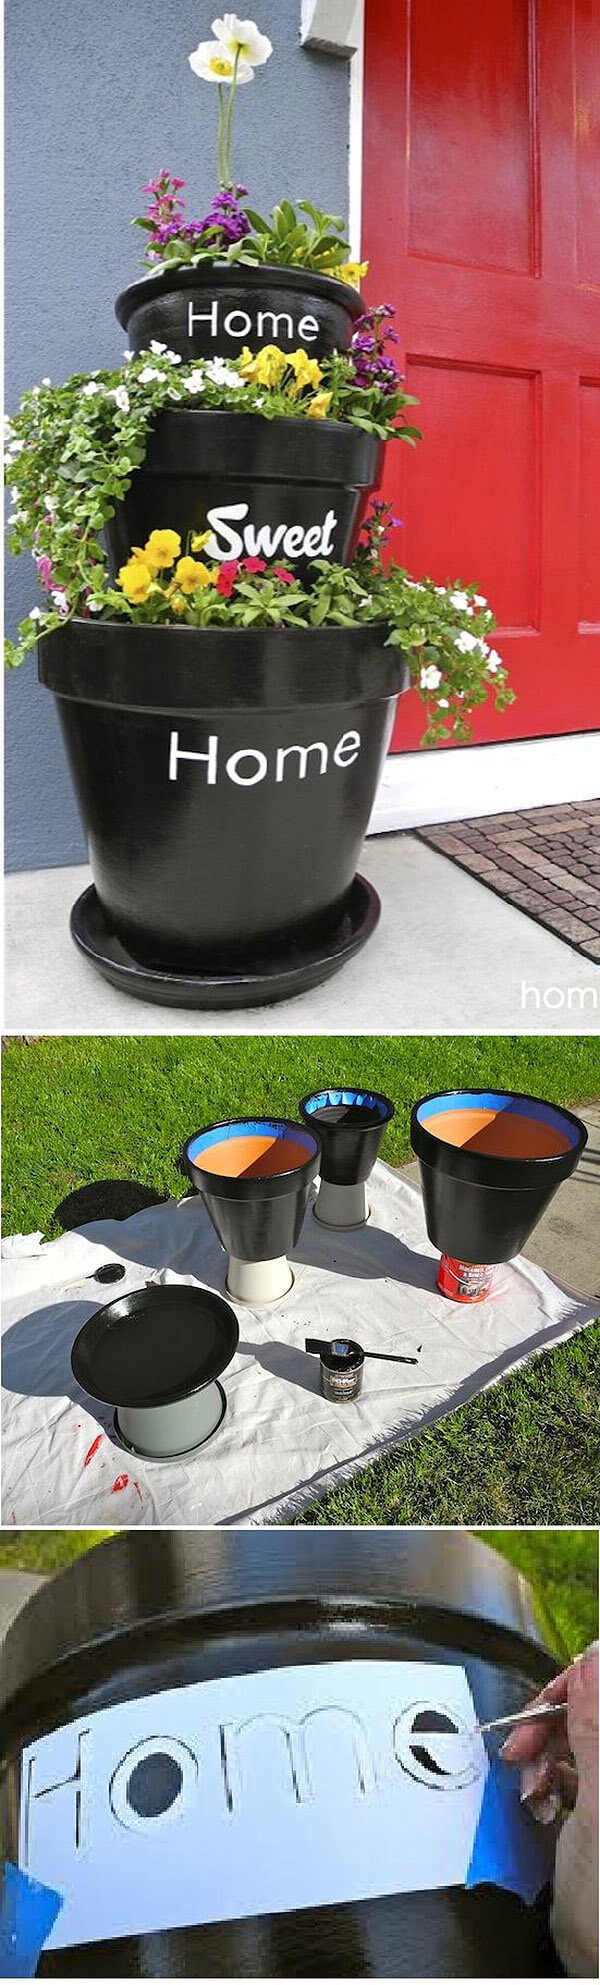 DIY Flower Towers Ideas: Tower with a Message